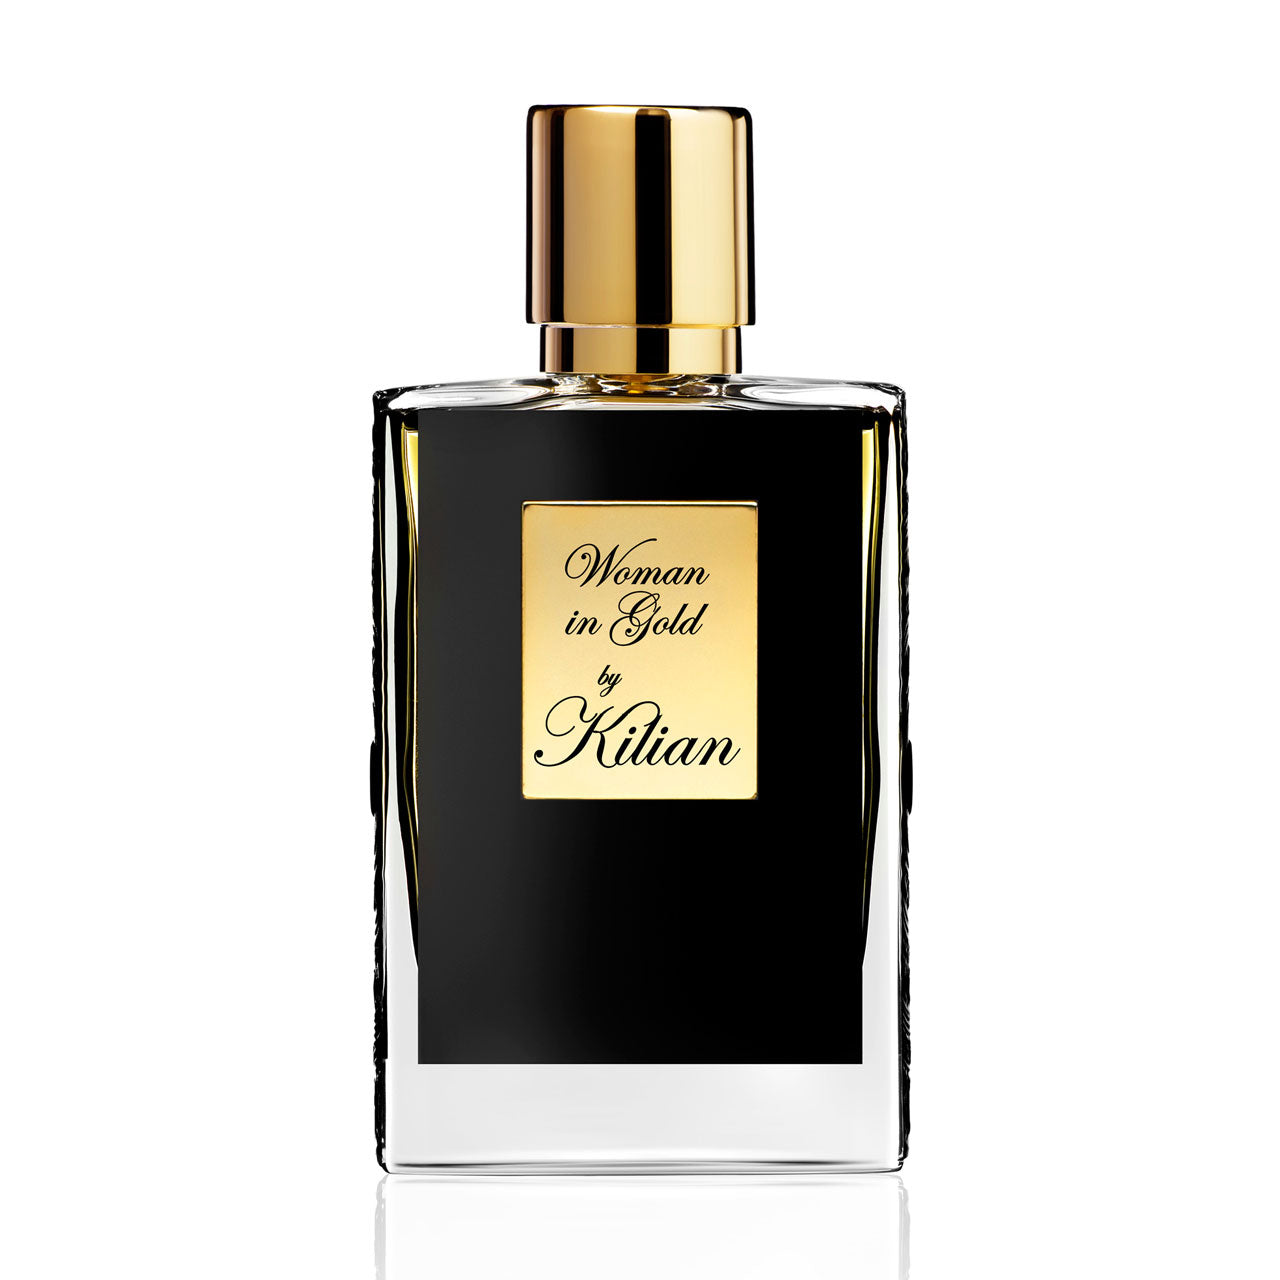 BY KILIAN - Woman in Gold Eau de Parfum - 50ml